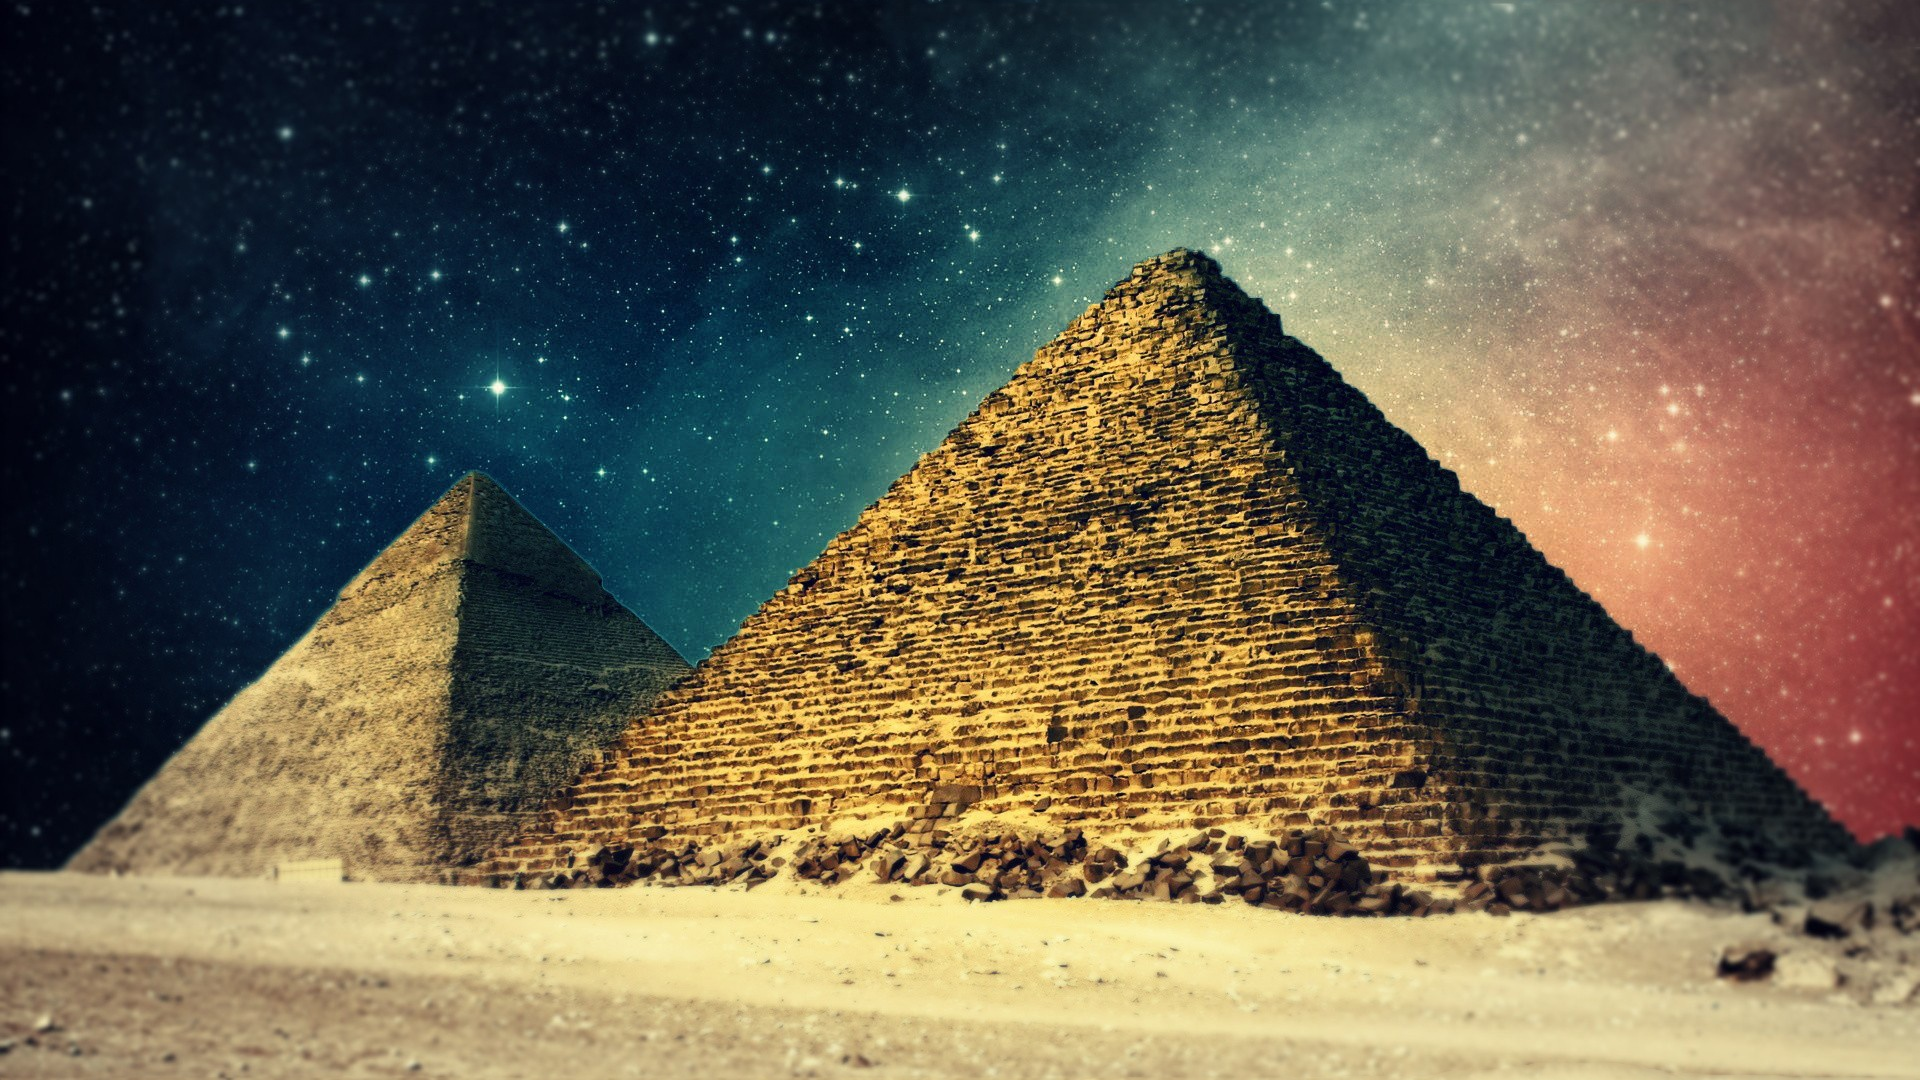 Egypt pyramids art wallpaper | 1920x1080 | #15045